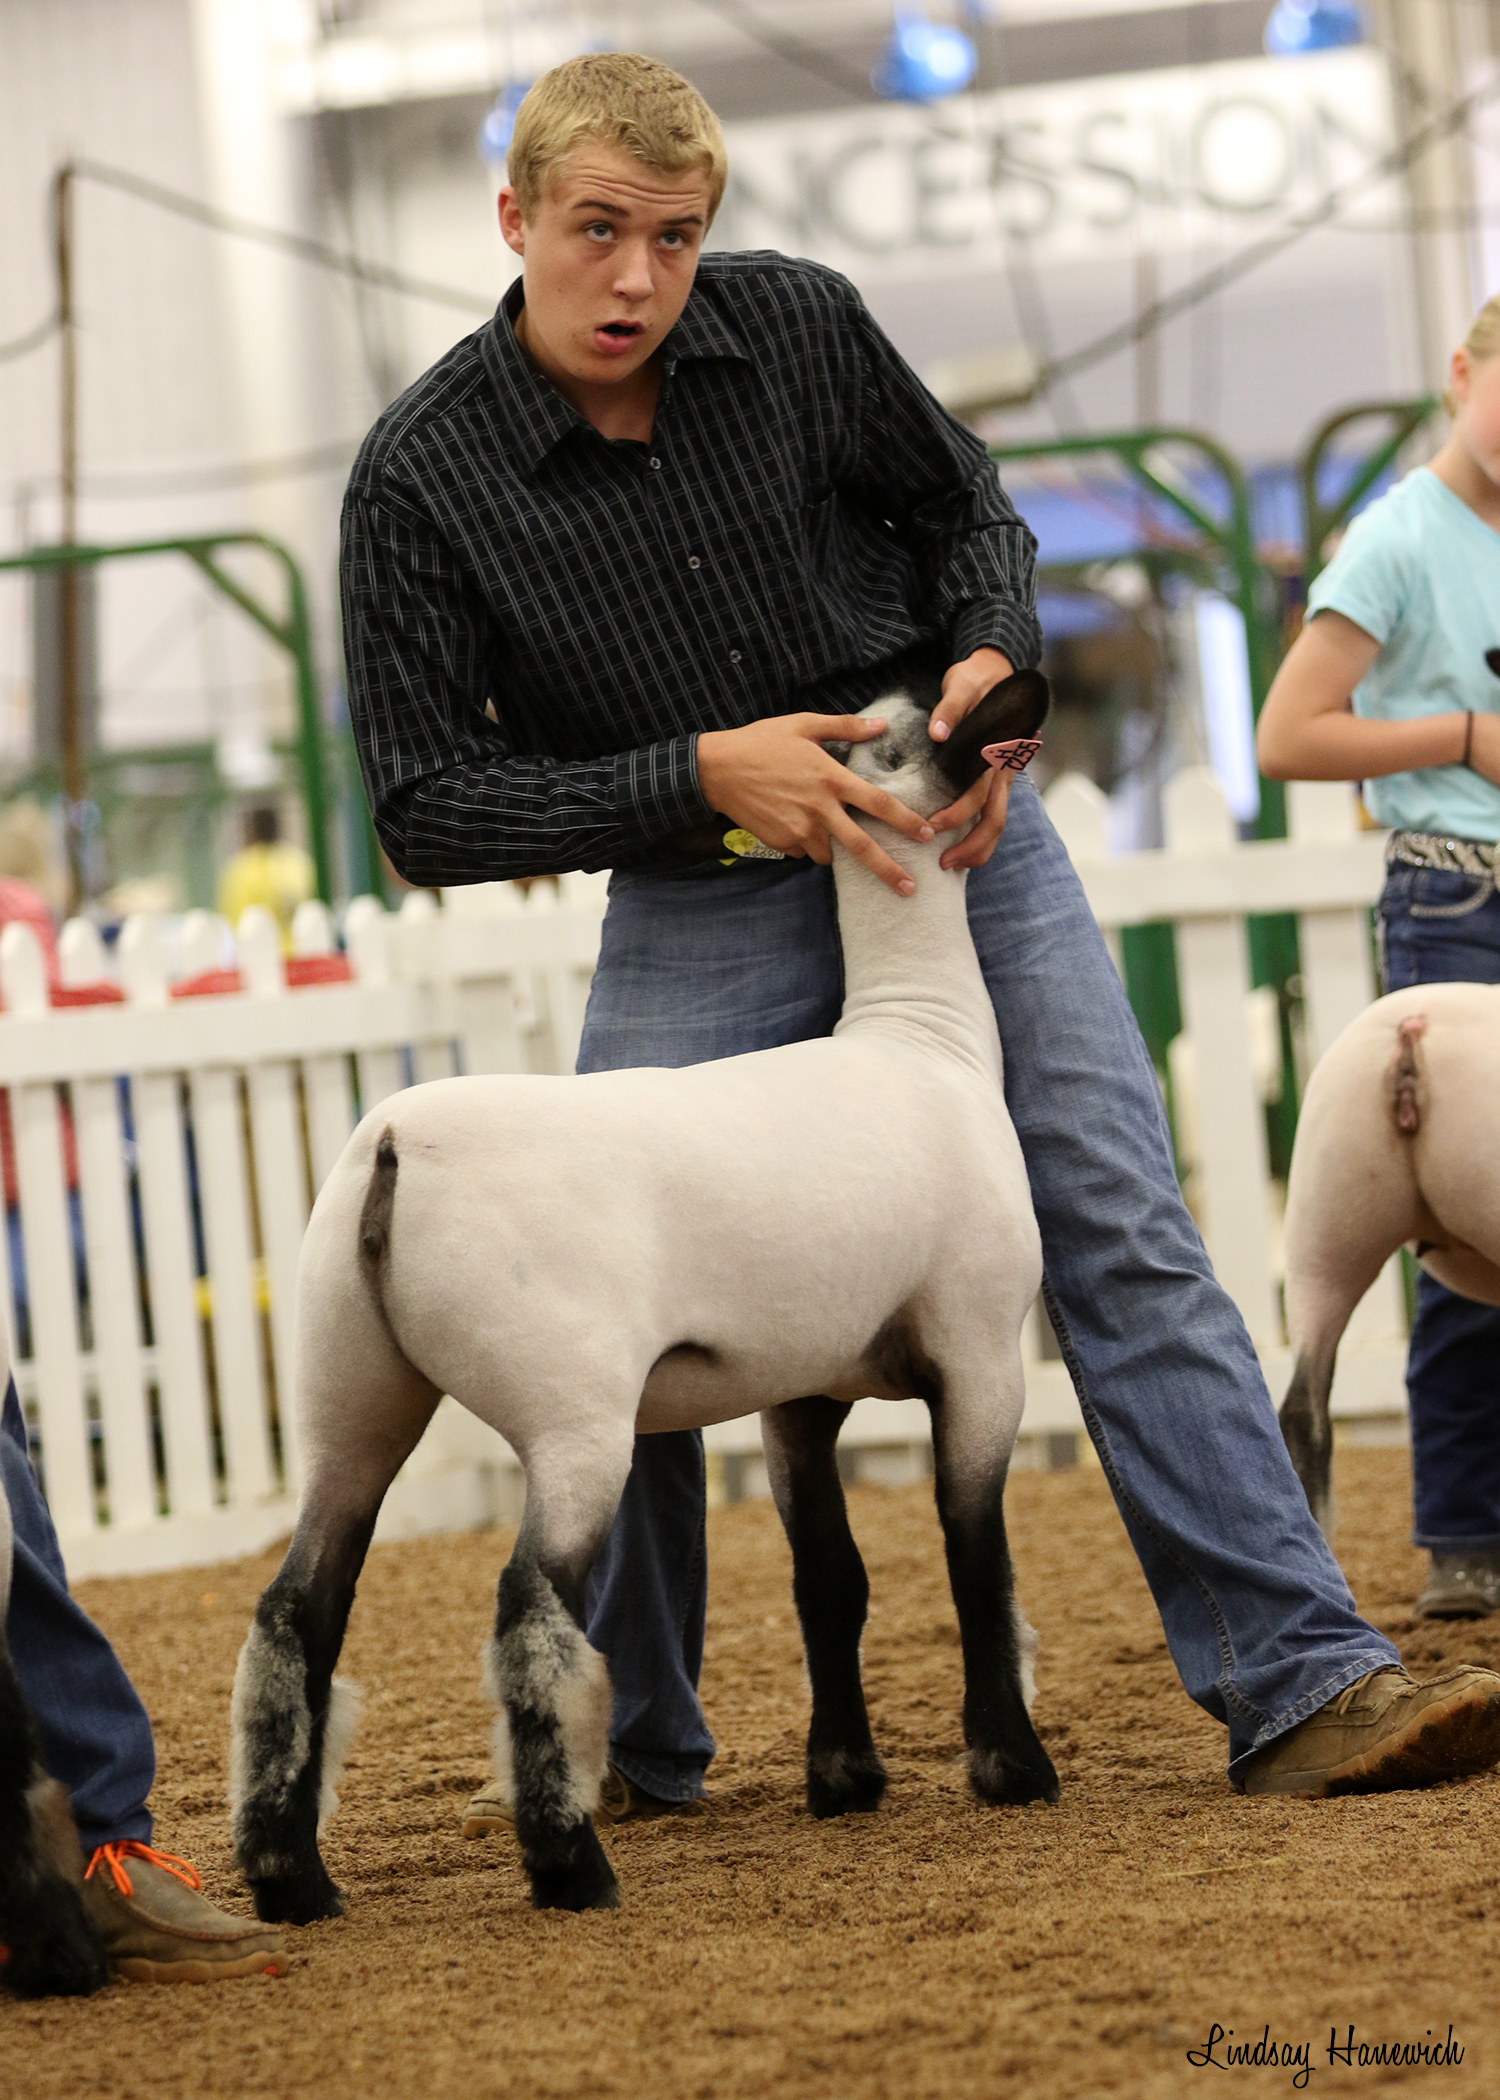 Korbin Heminger - Class Winner | Indiana State Fair